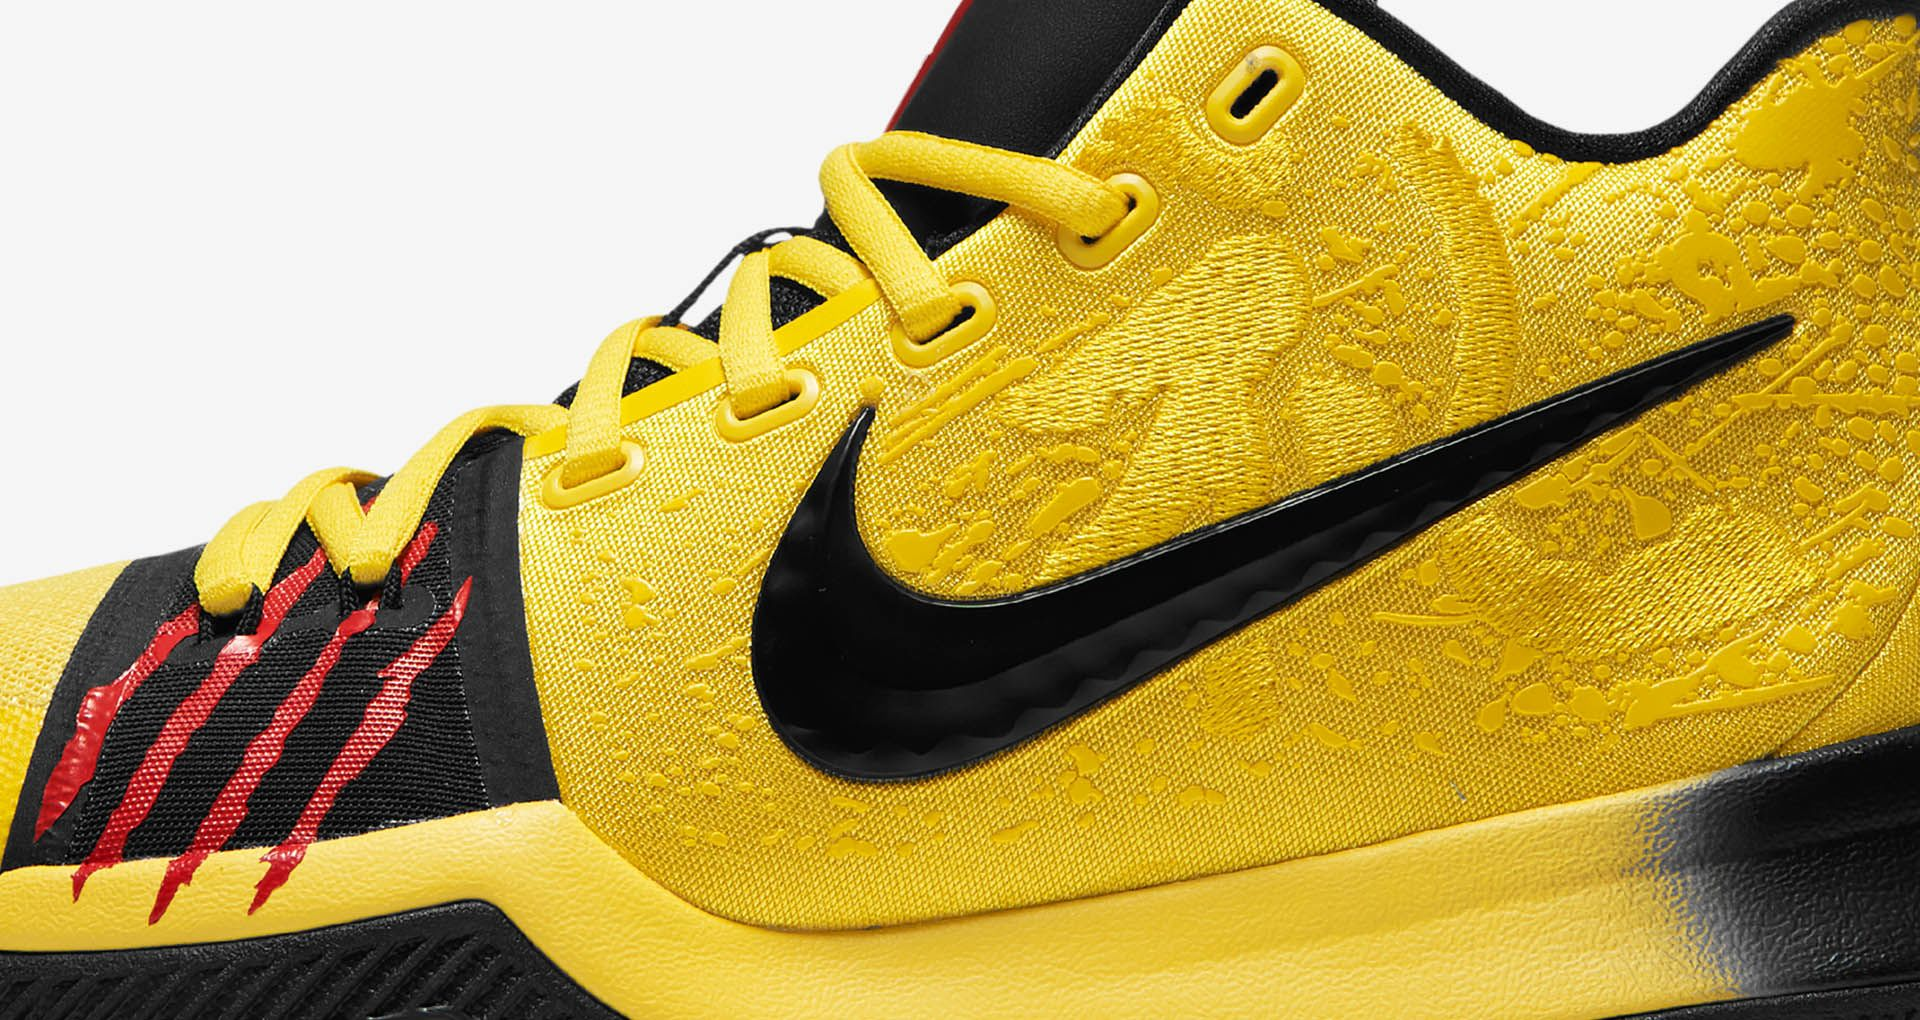 low priced 7c3d6 a14a0 Nike Kyrie 3 'Mamba Mentality'. Nike⁠+ SNKRS